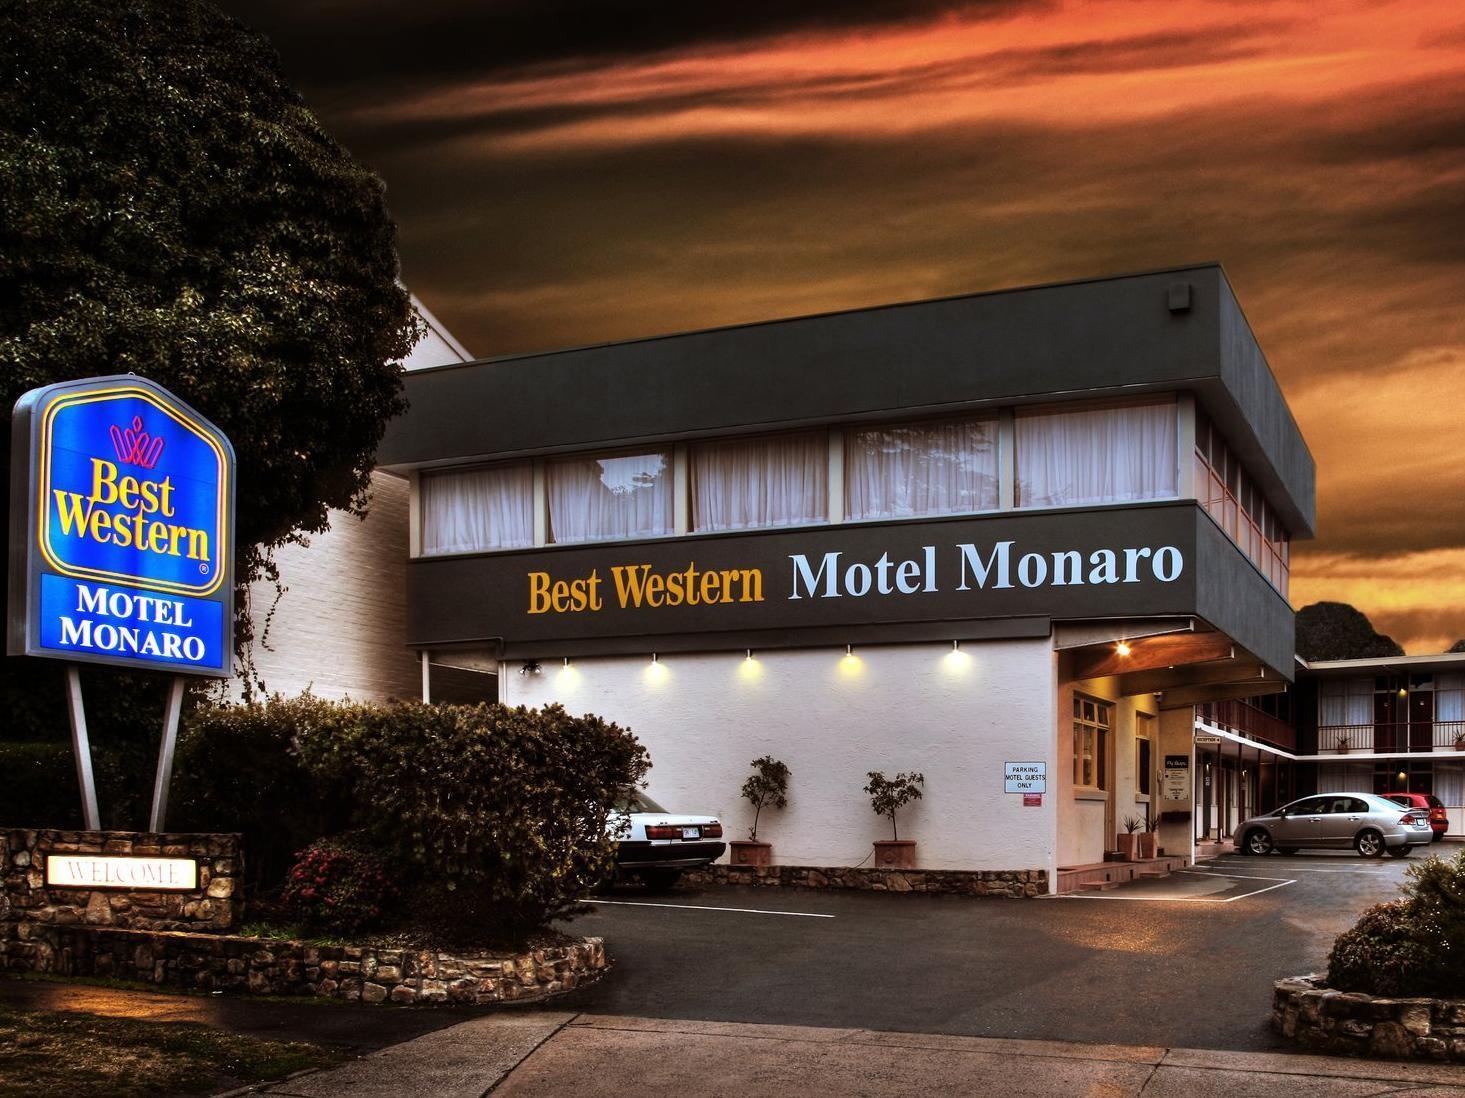 BEST WESTERN Motel Monaro – Hotel Review, Pictures & Room Prices